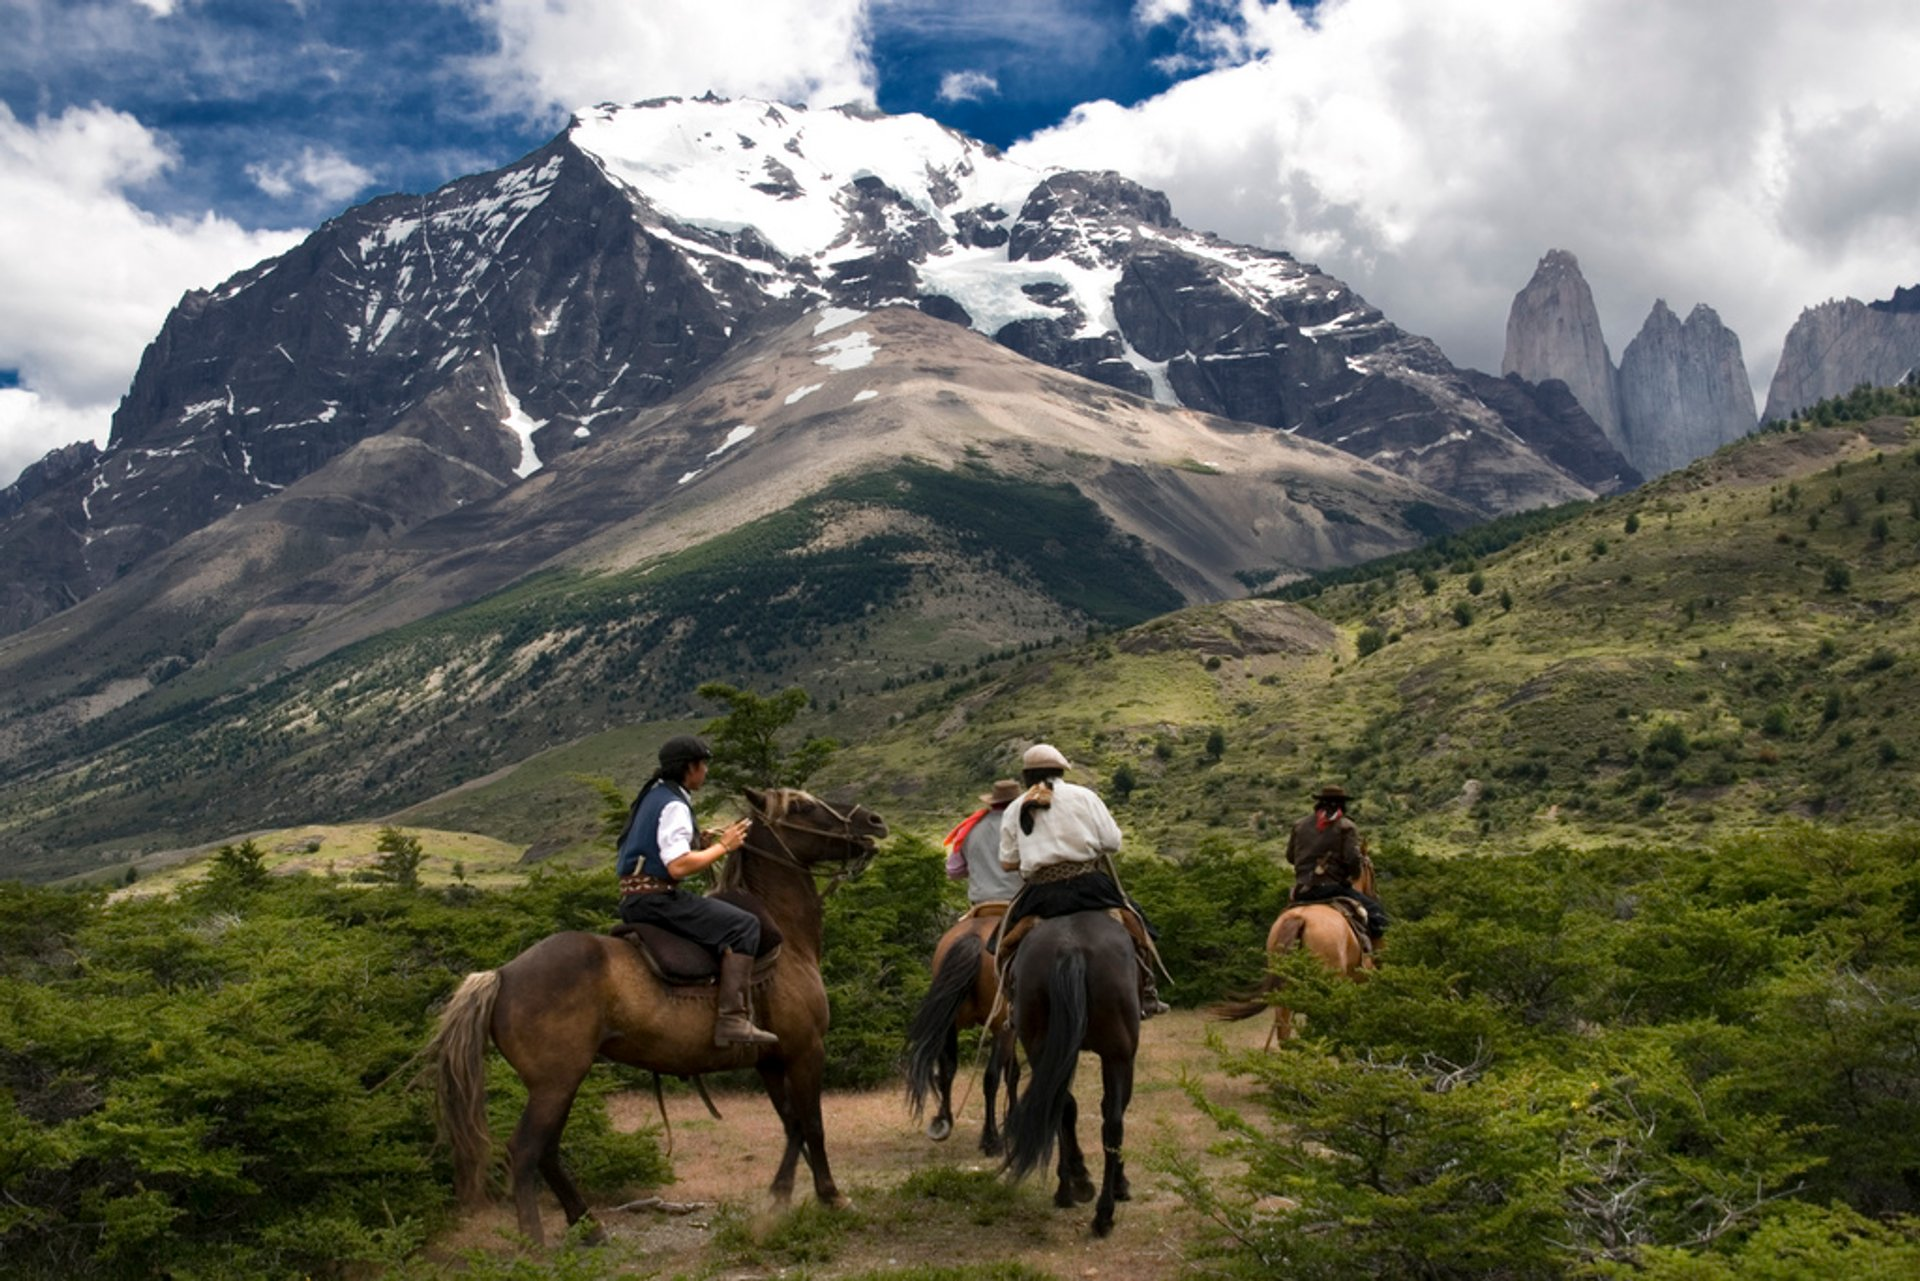 Horseback Riding in the Andes in Chile 2019 - Best Time